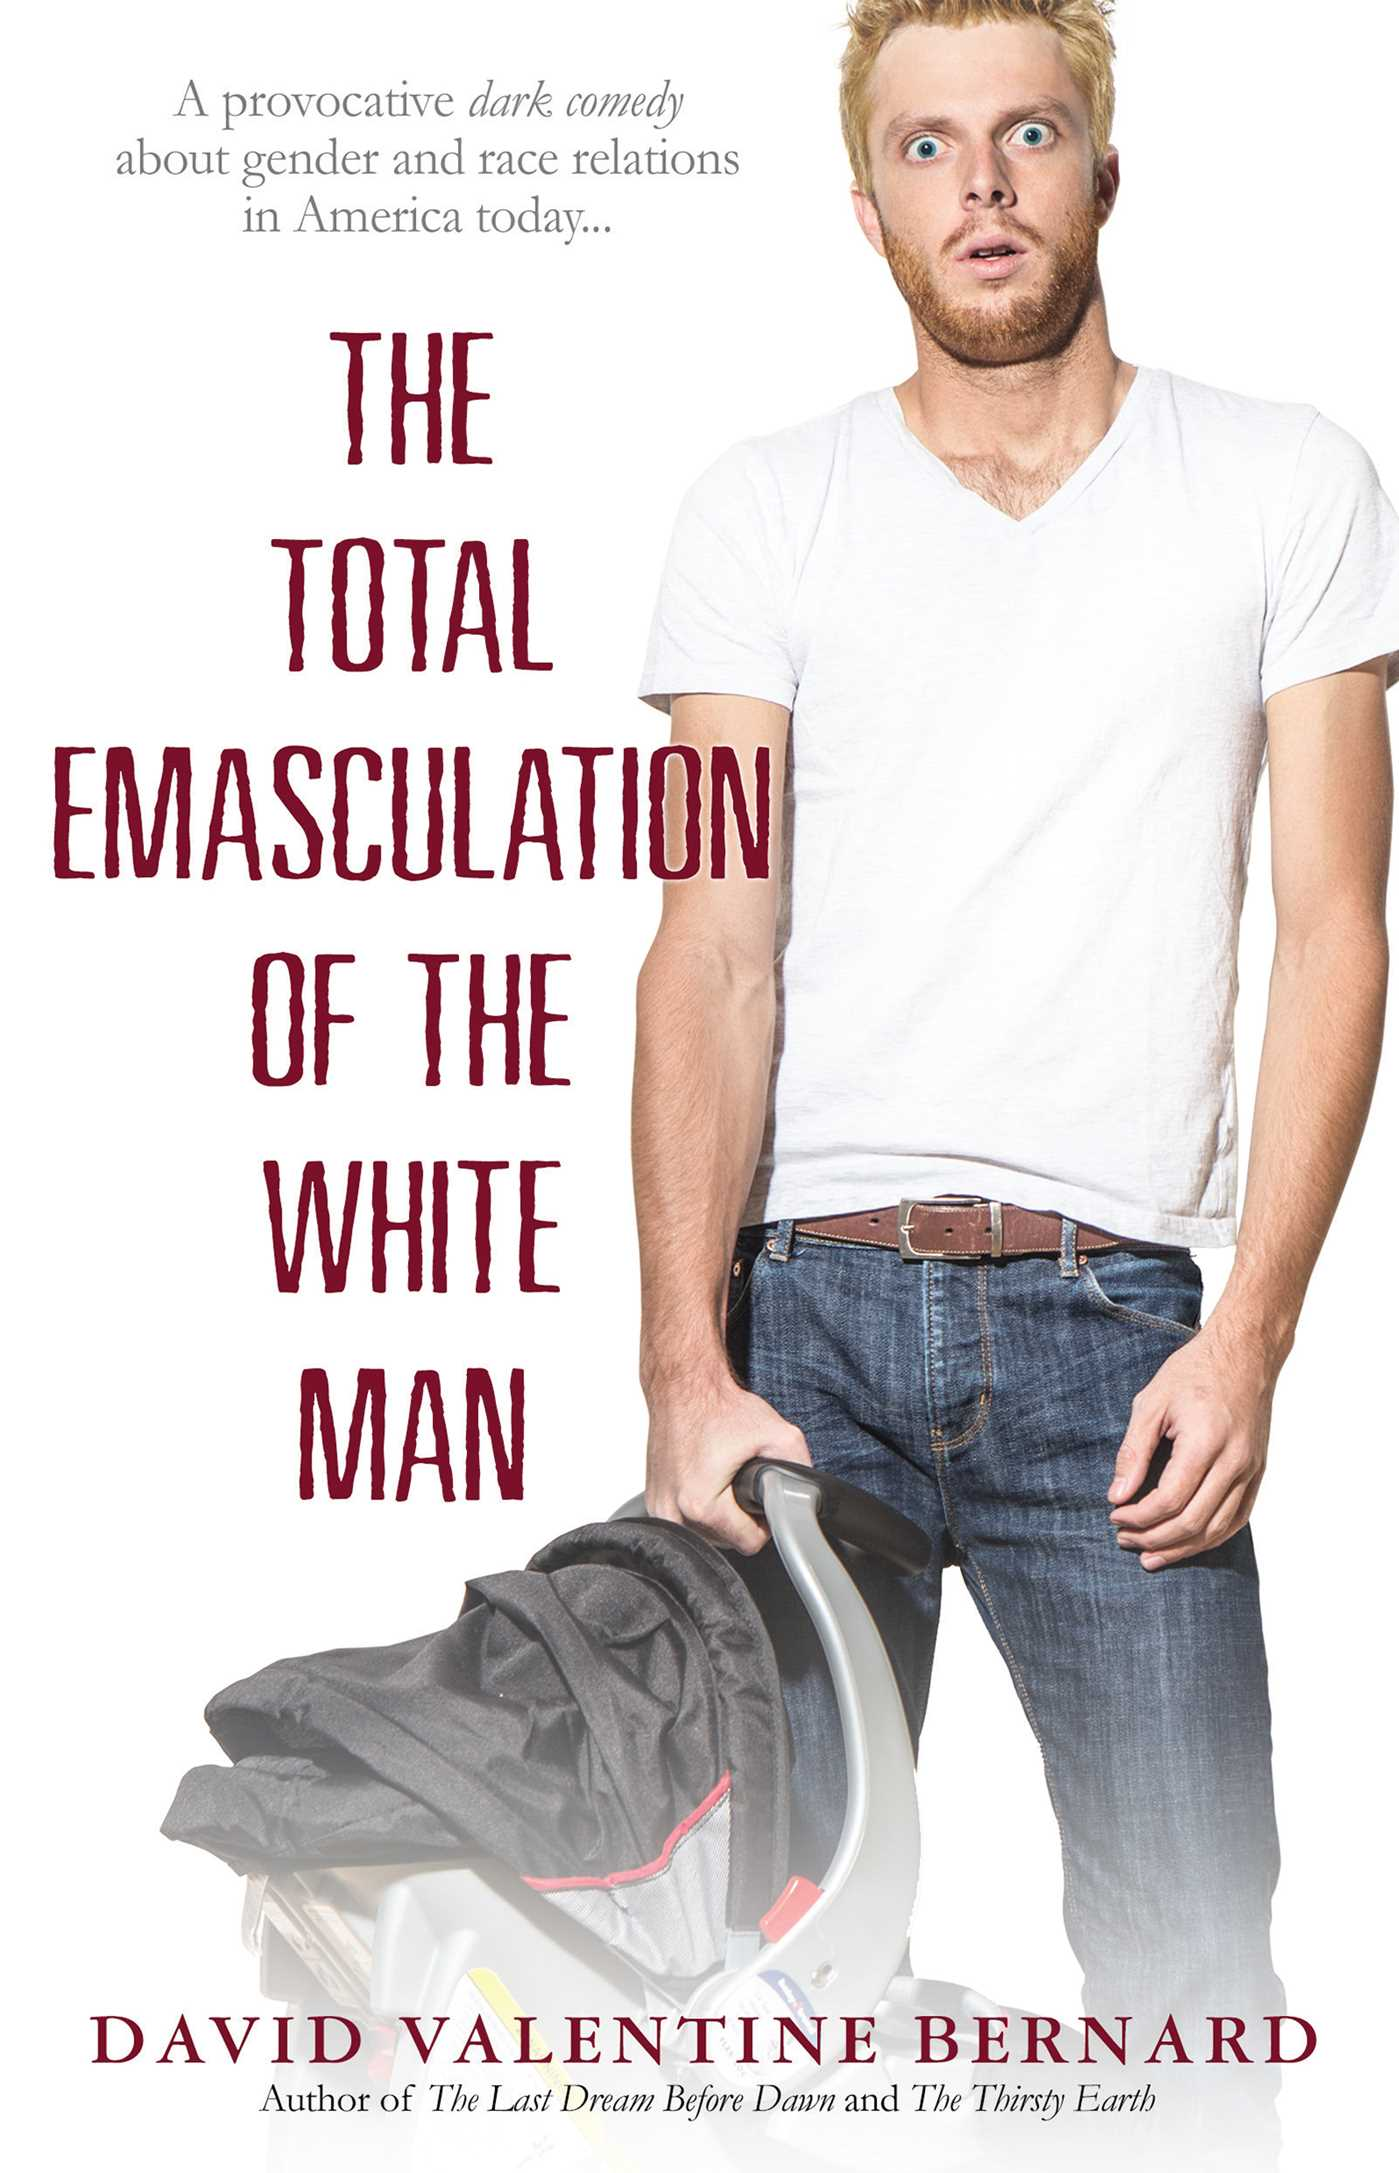 Emasculation of men in america